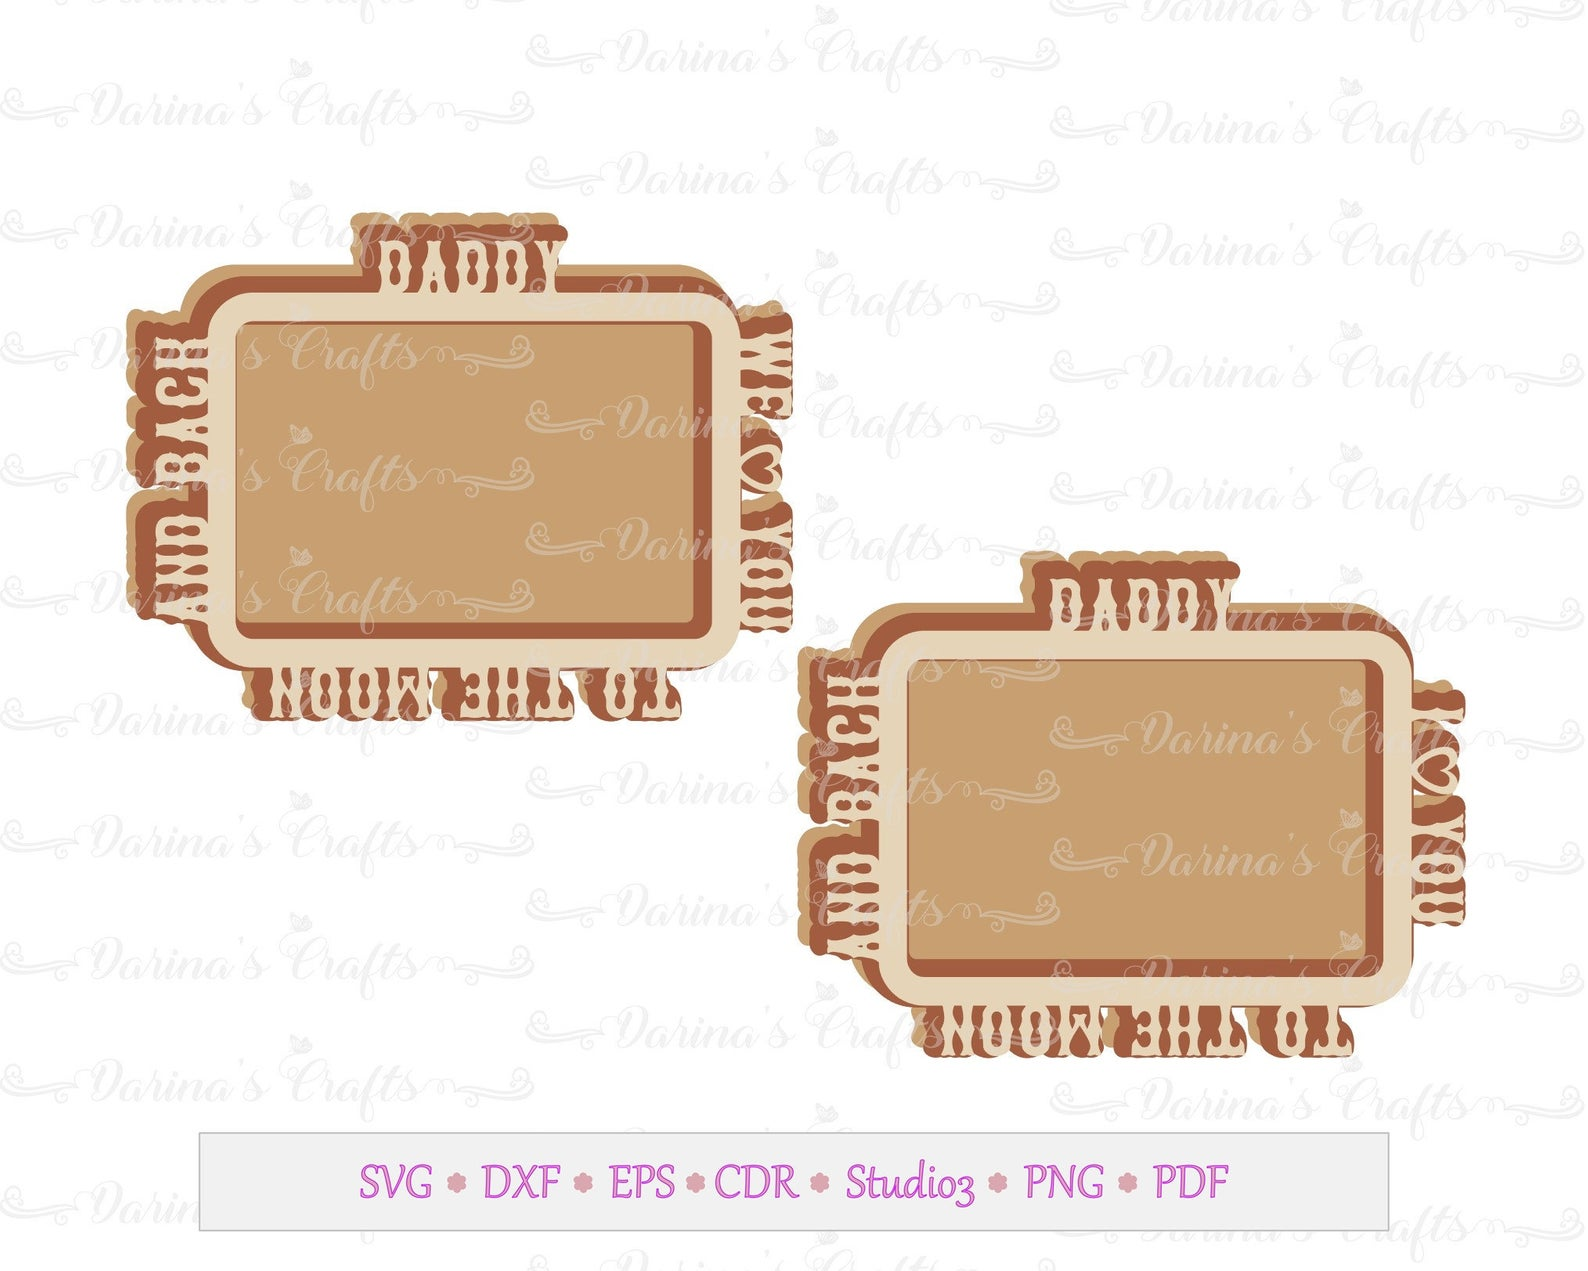 Father S Day Frame Svg Kits Daddy I We Love You To The Moon Abd Back Frame Templates Fathersday Fath Fathers Day Frames Frame Template Daddy I Love You